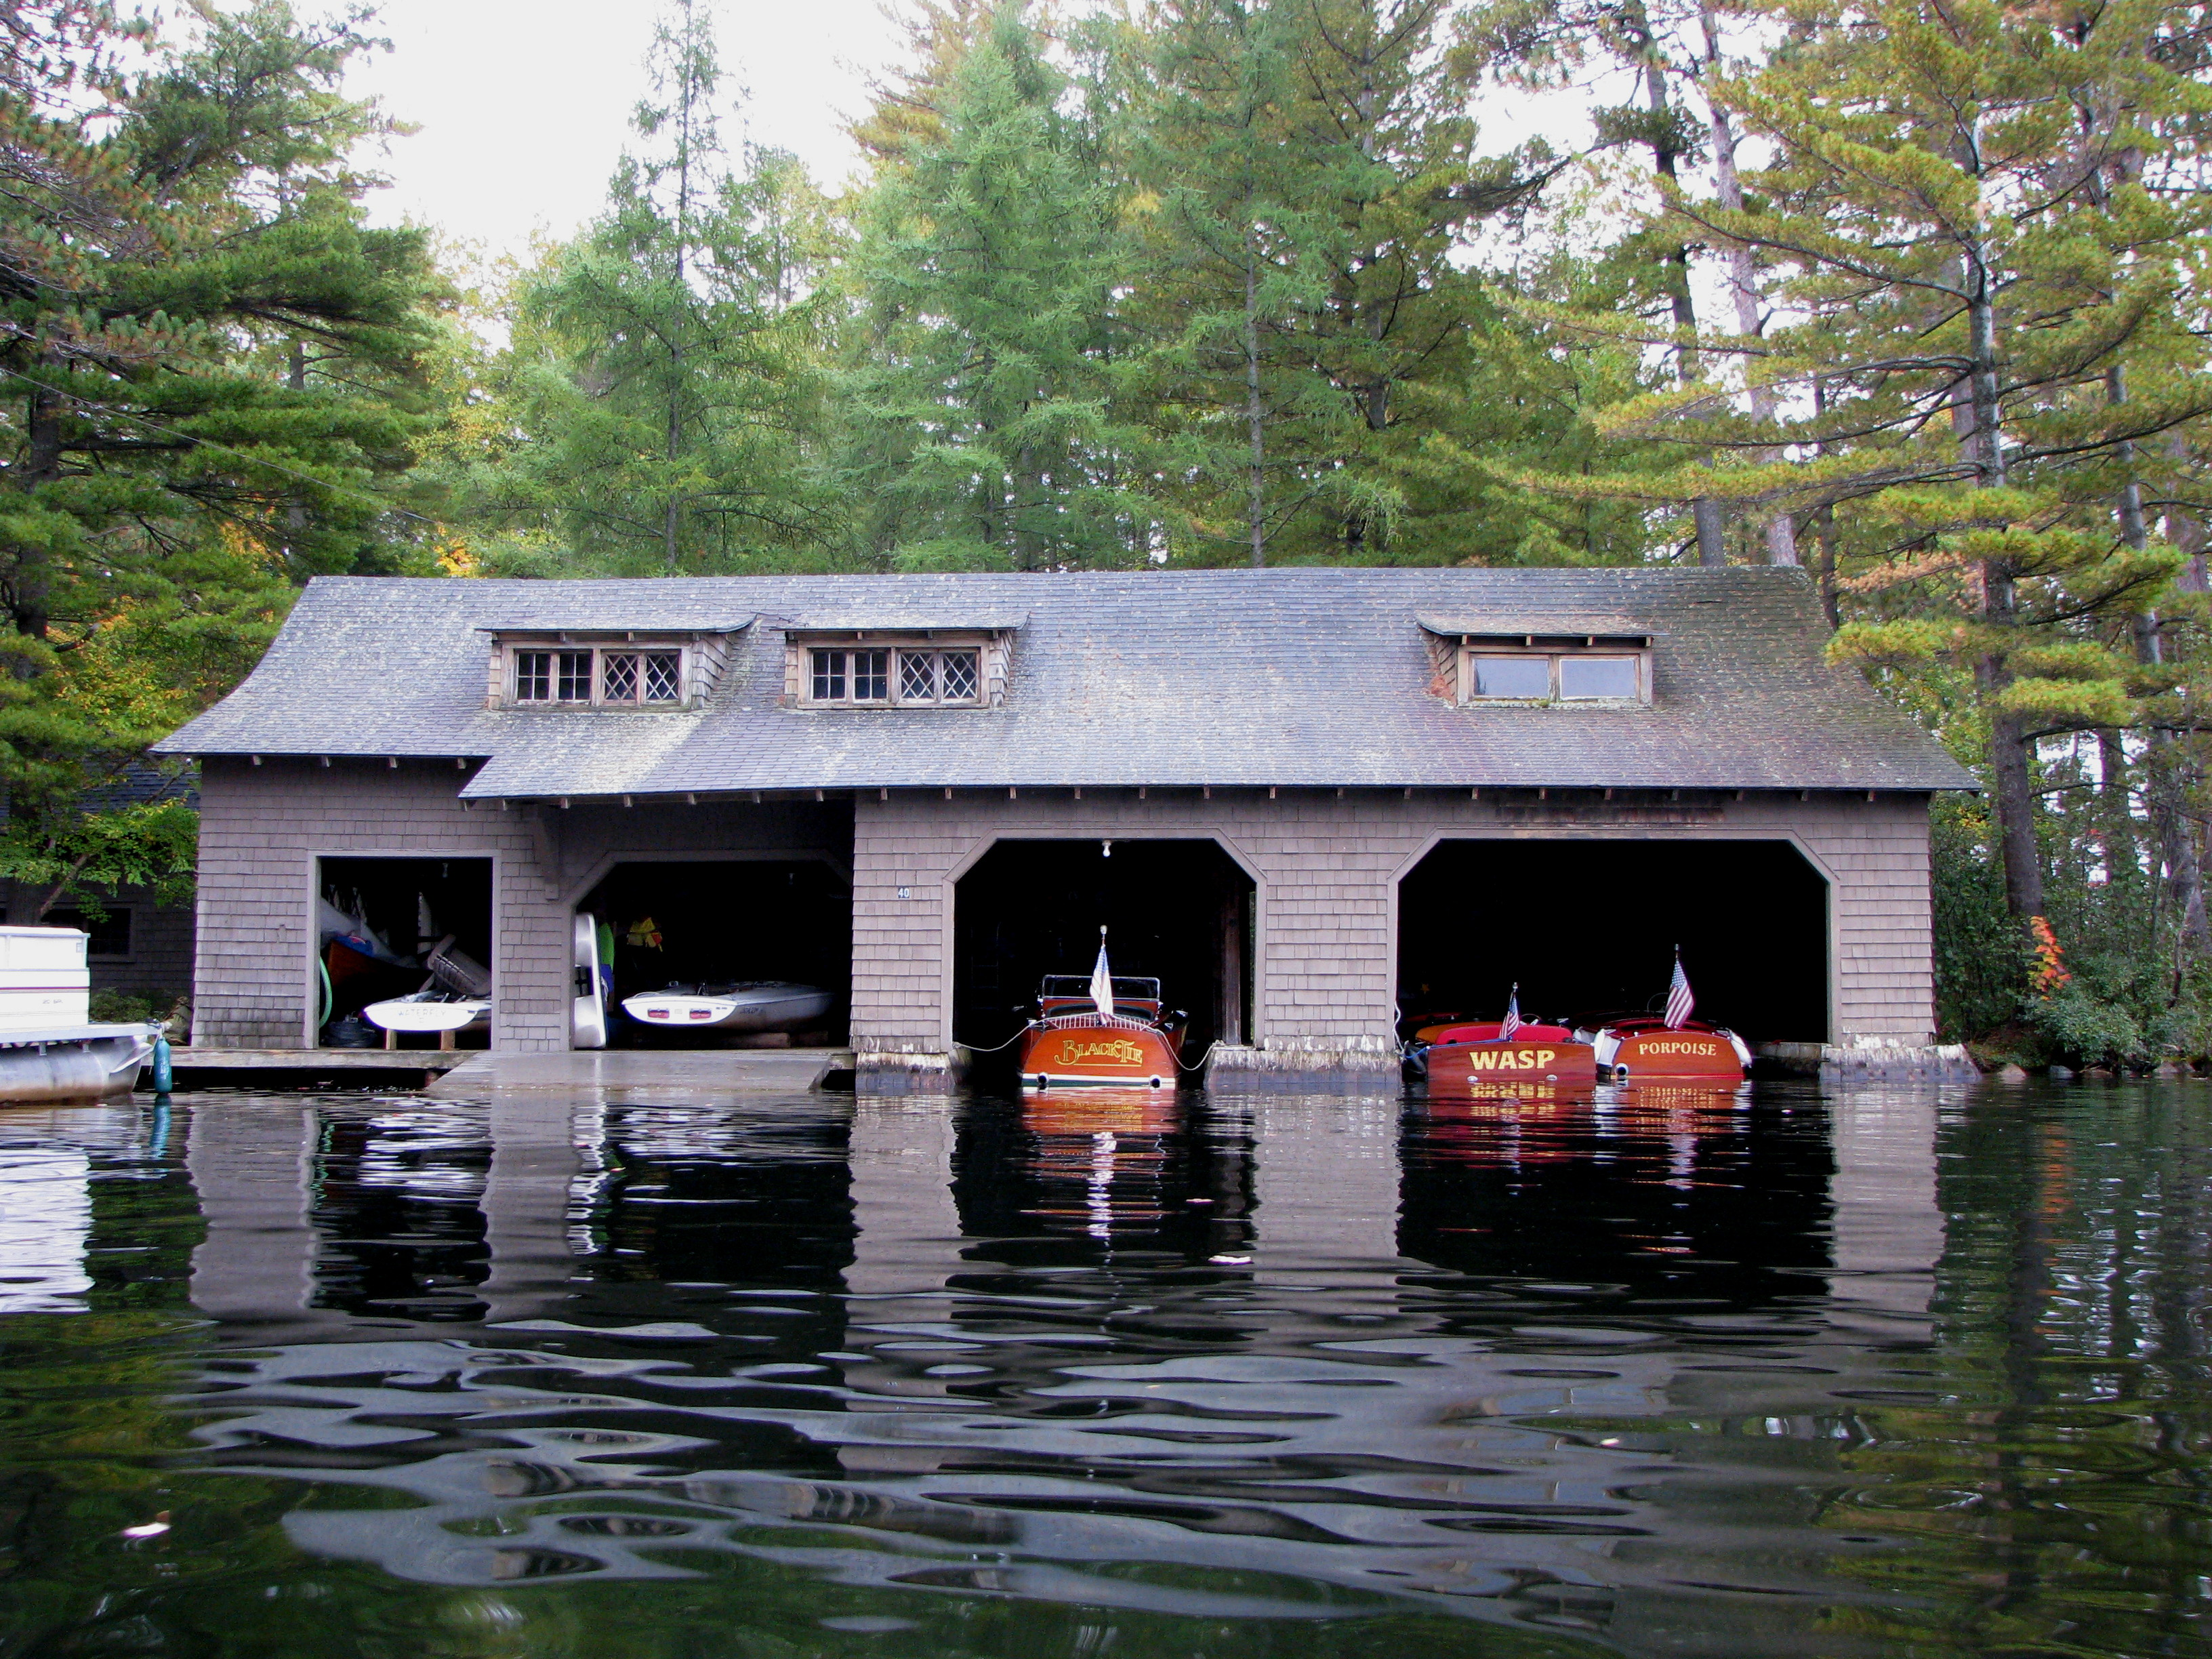 Boathouse wikidwelling for Boat house plans pictures